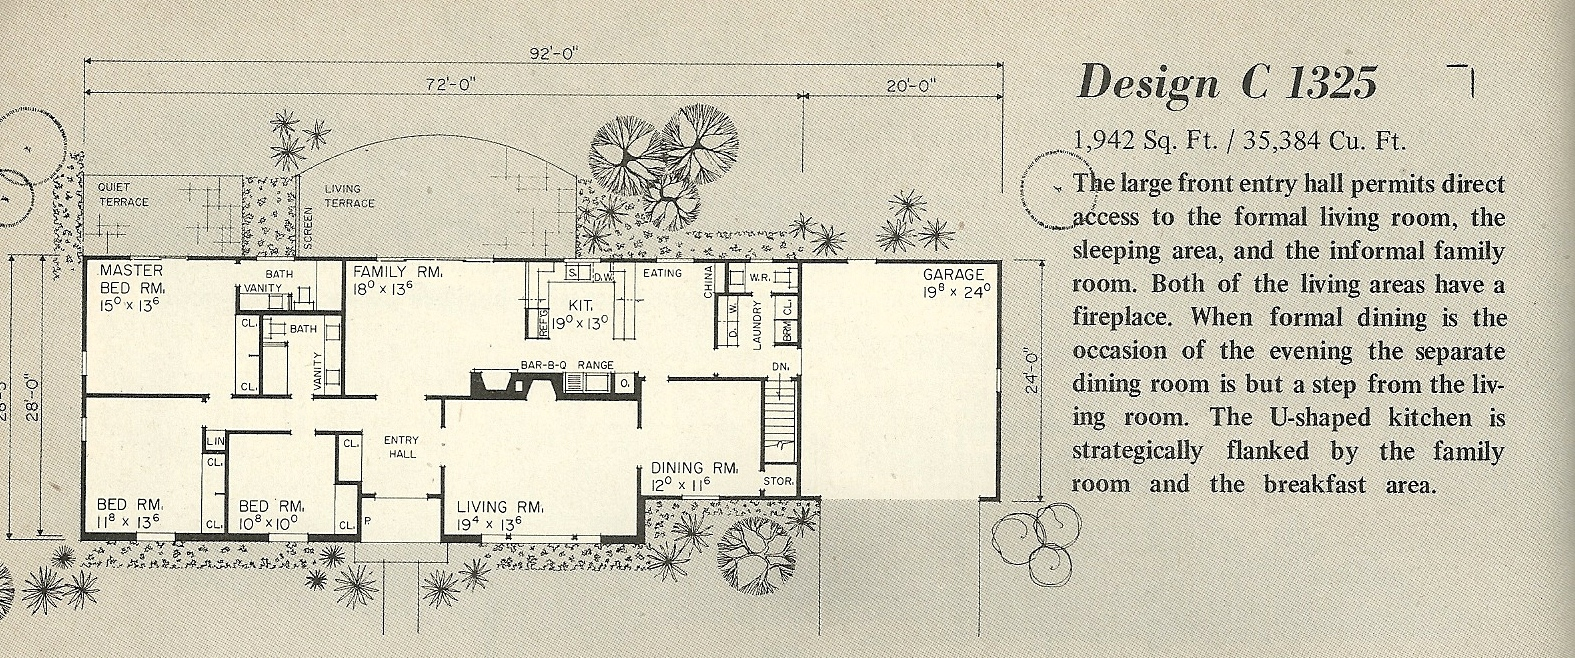 vintage house plans 1325a antique alter ego